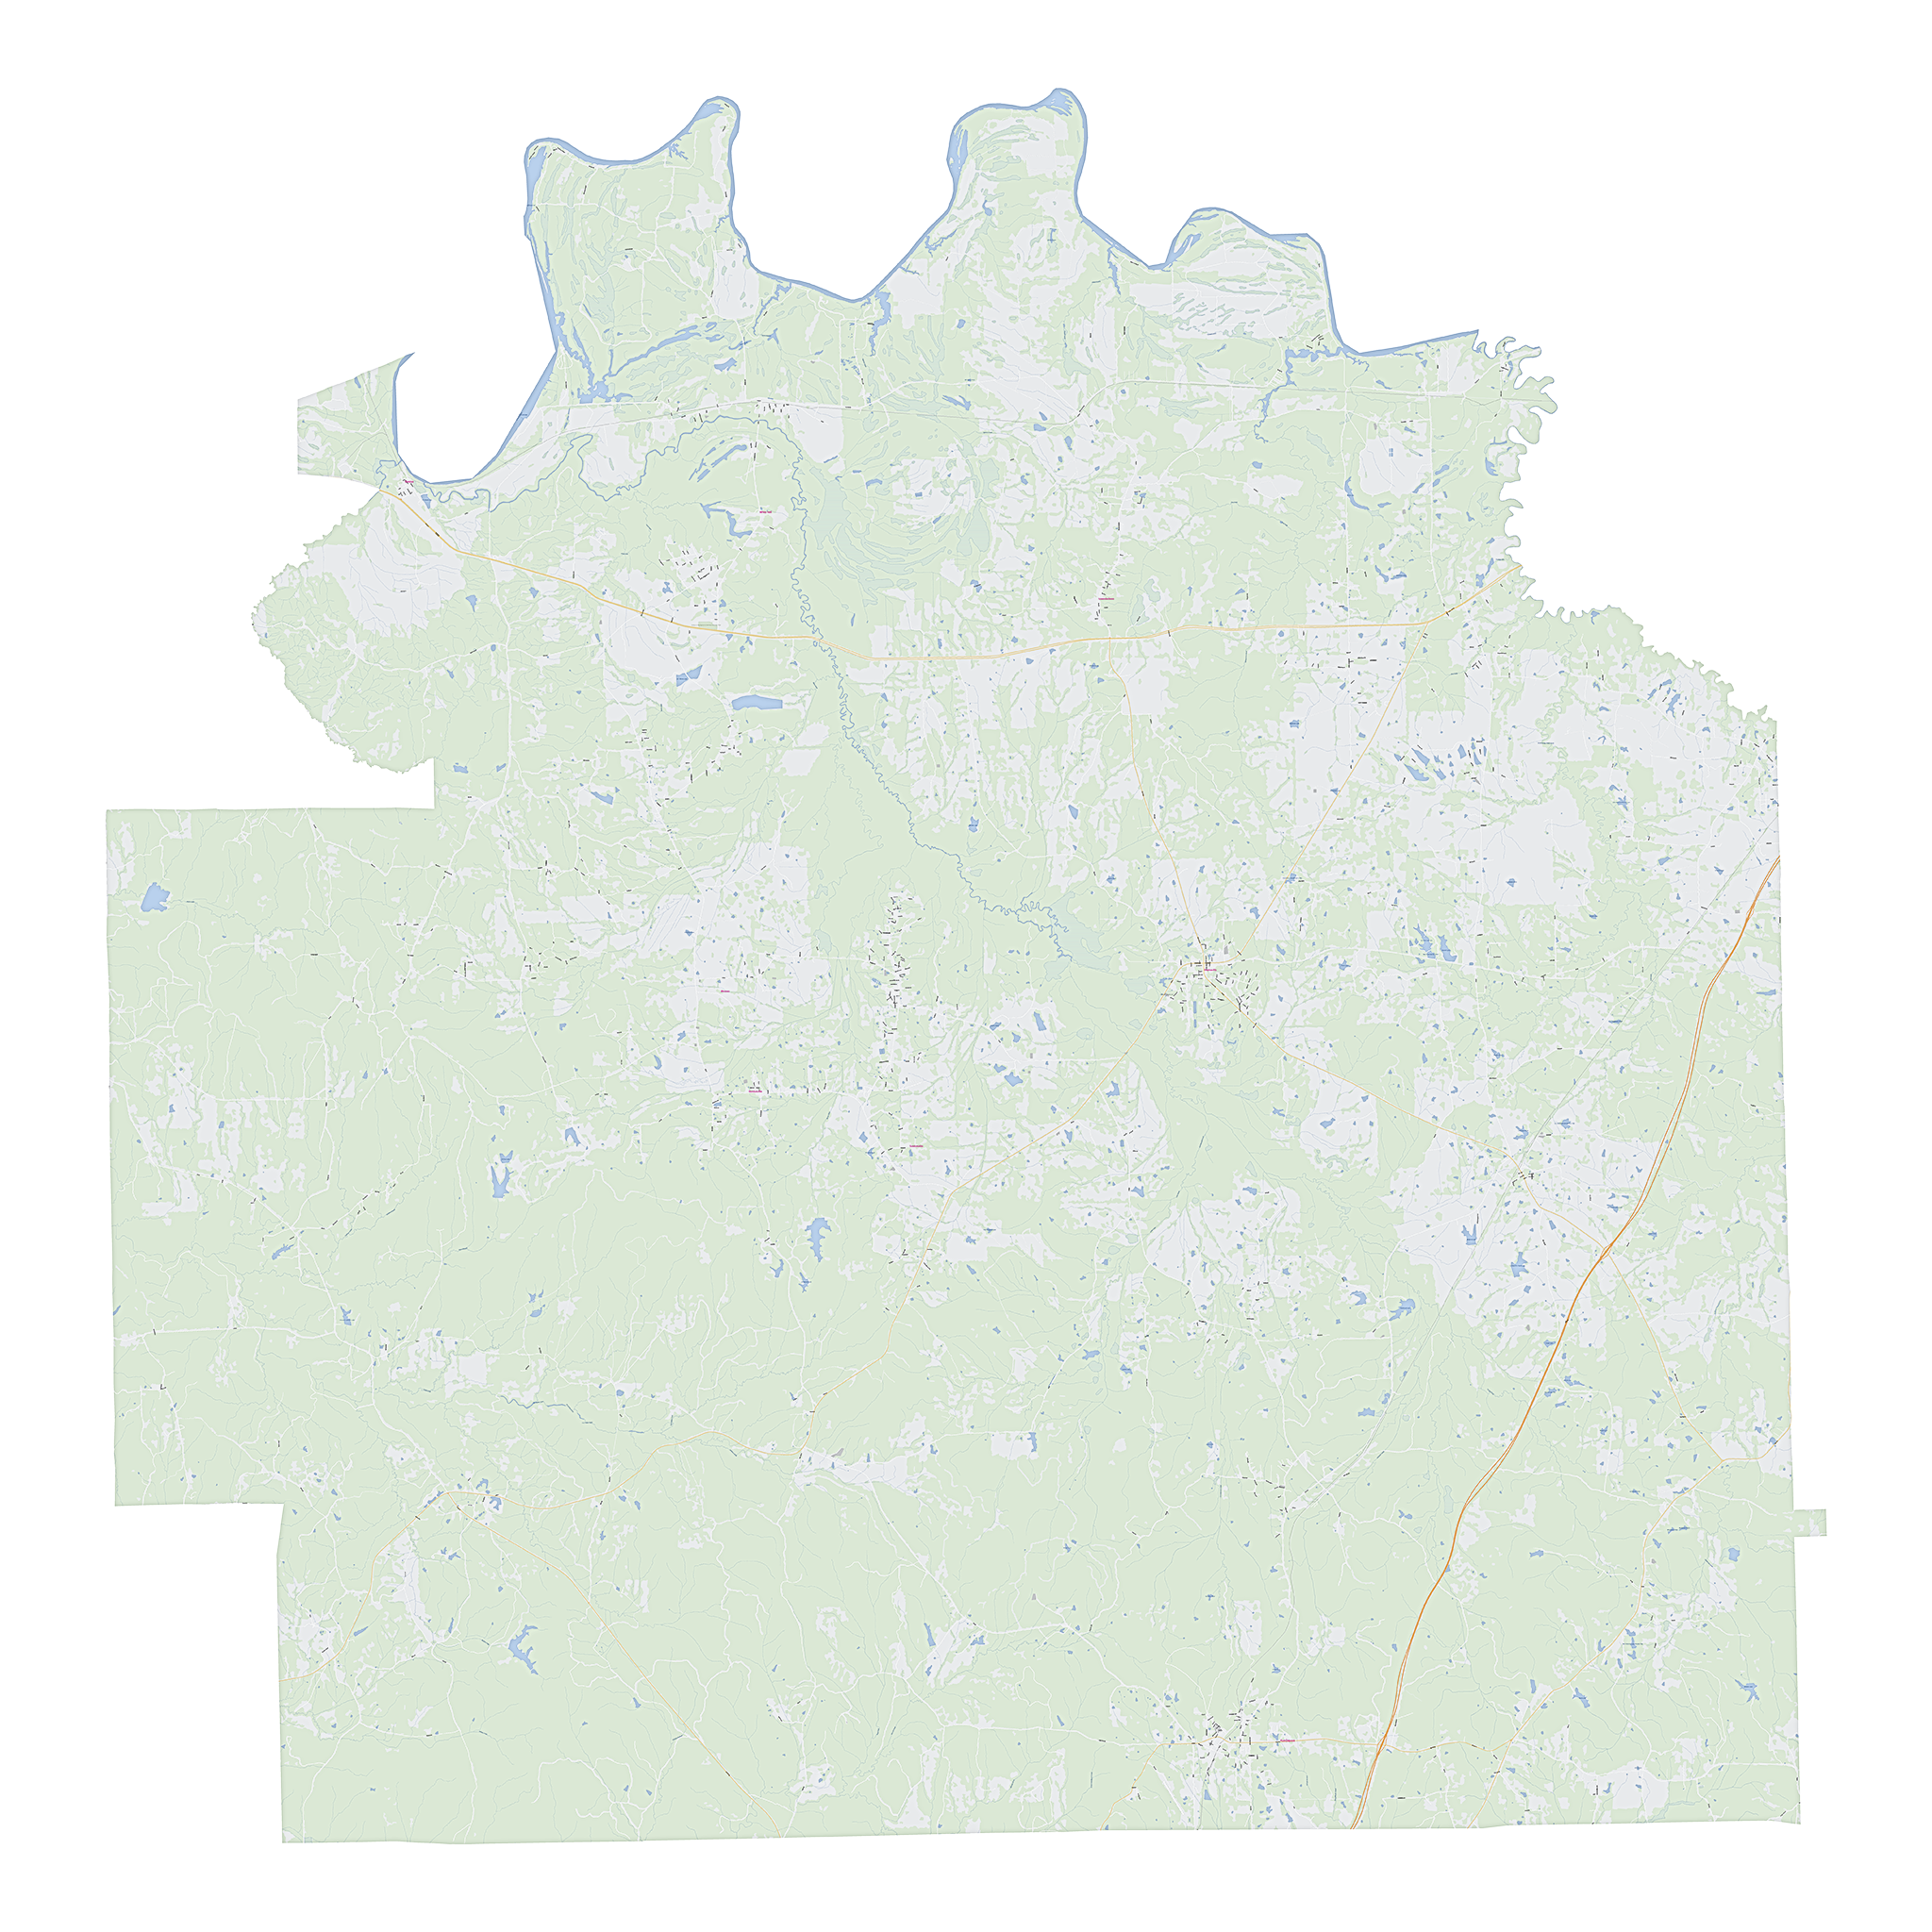 Royalty-free, digital vector street map of Lowndes County, Alabama.